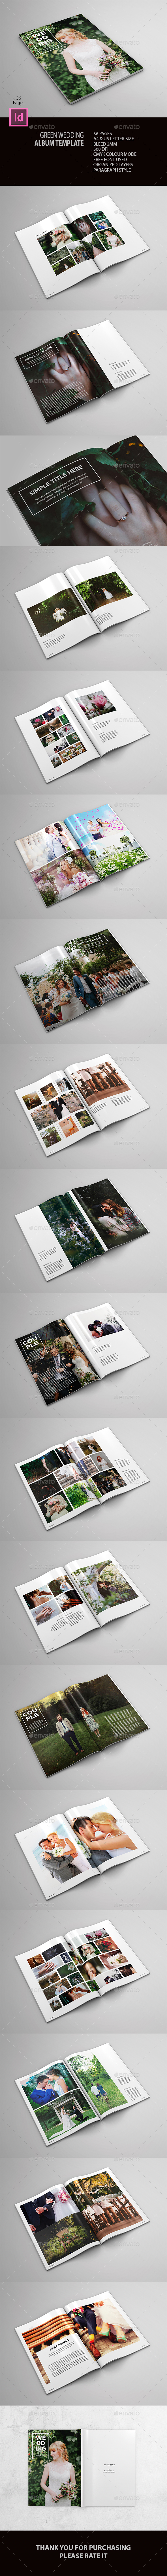 Green Wedding Album - Photo Albums Print Templates